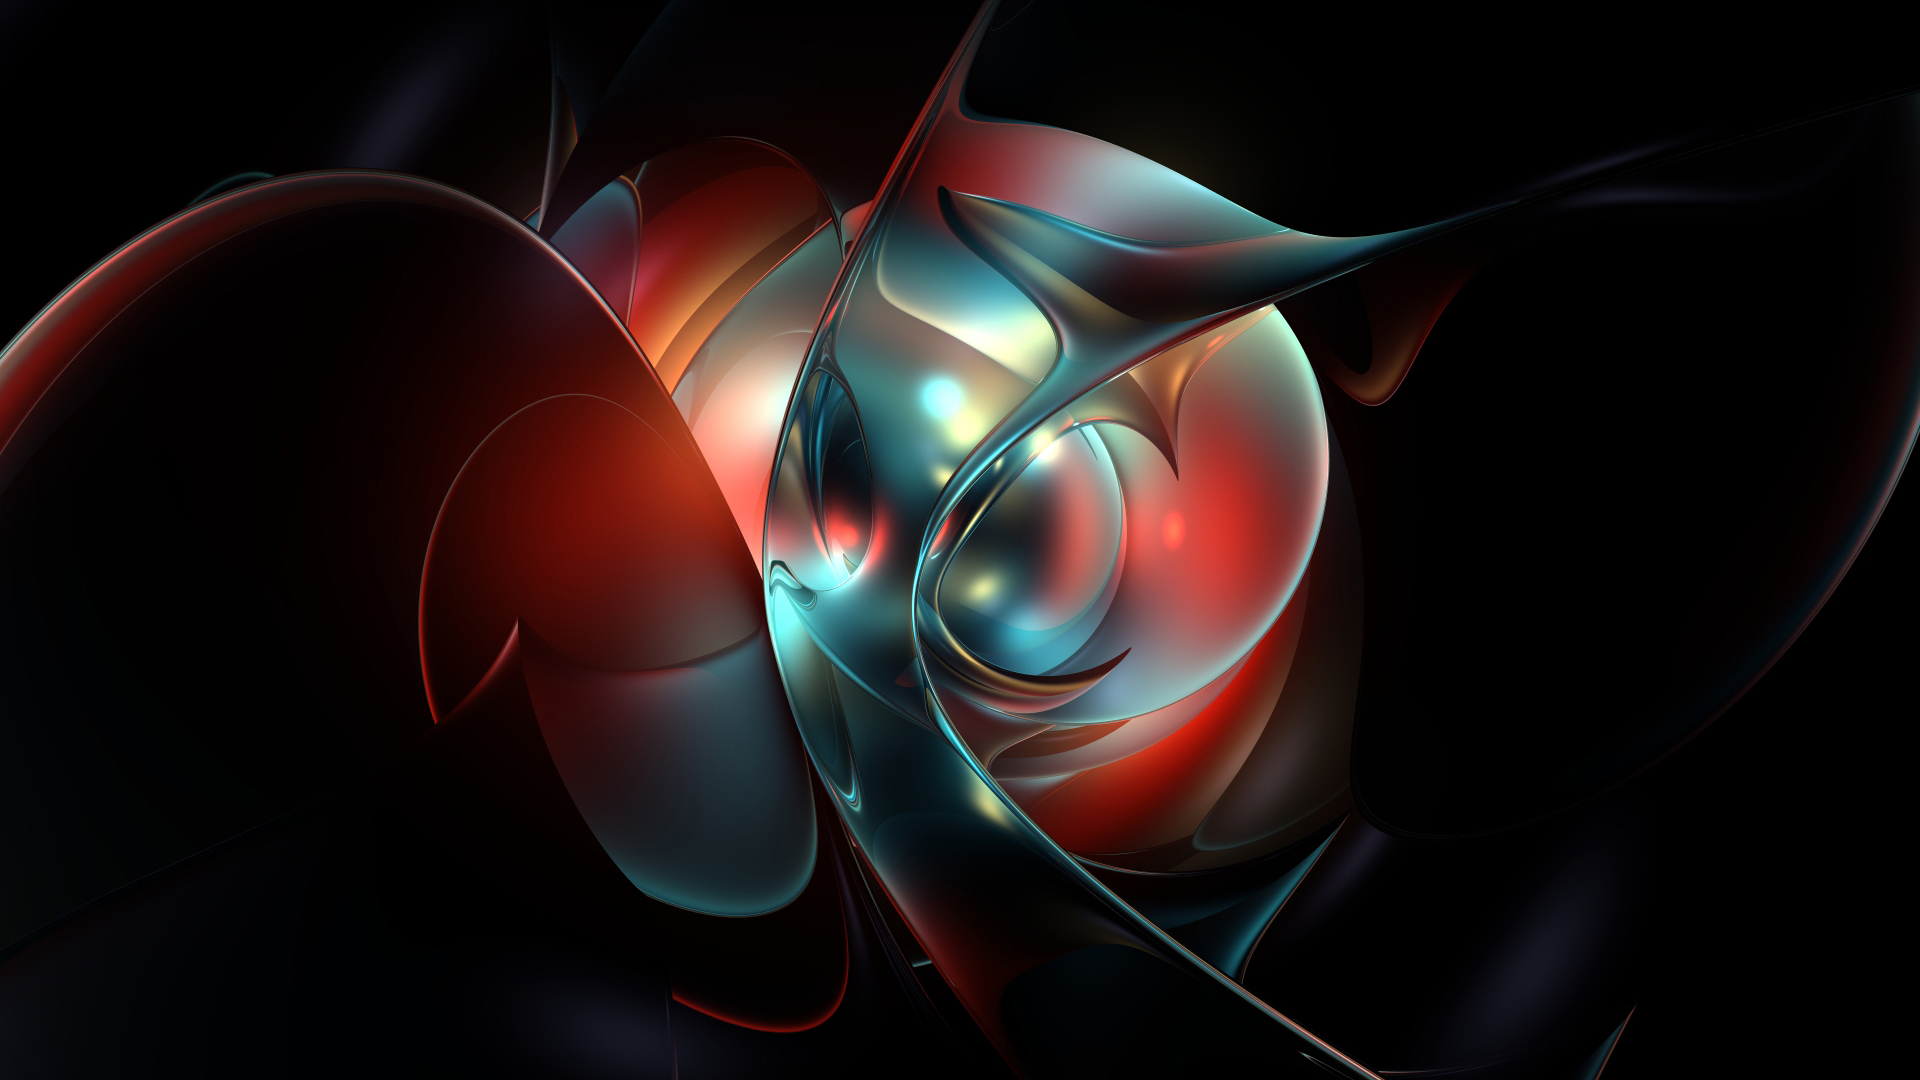 3D Abstract 244.29 Kb